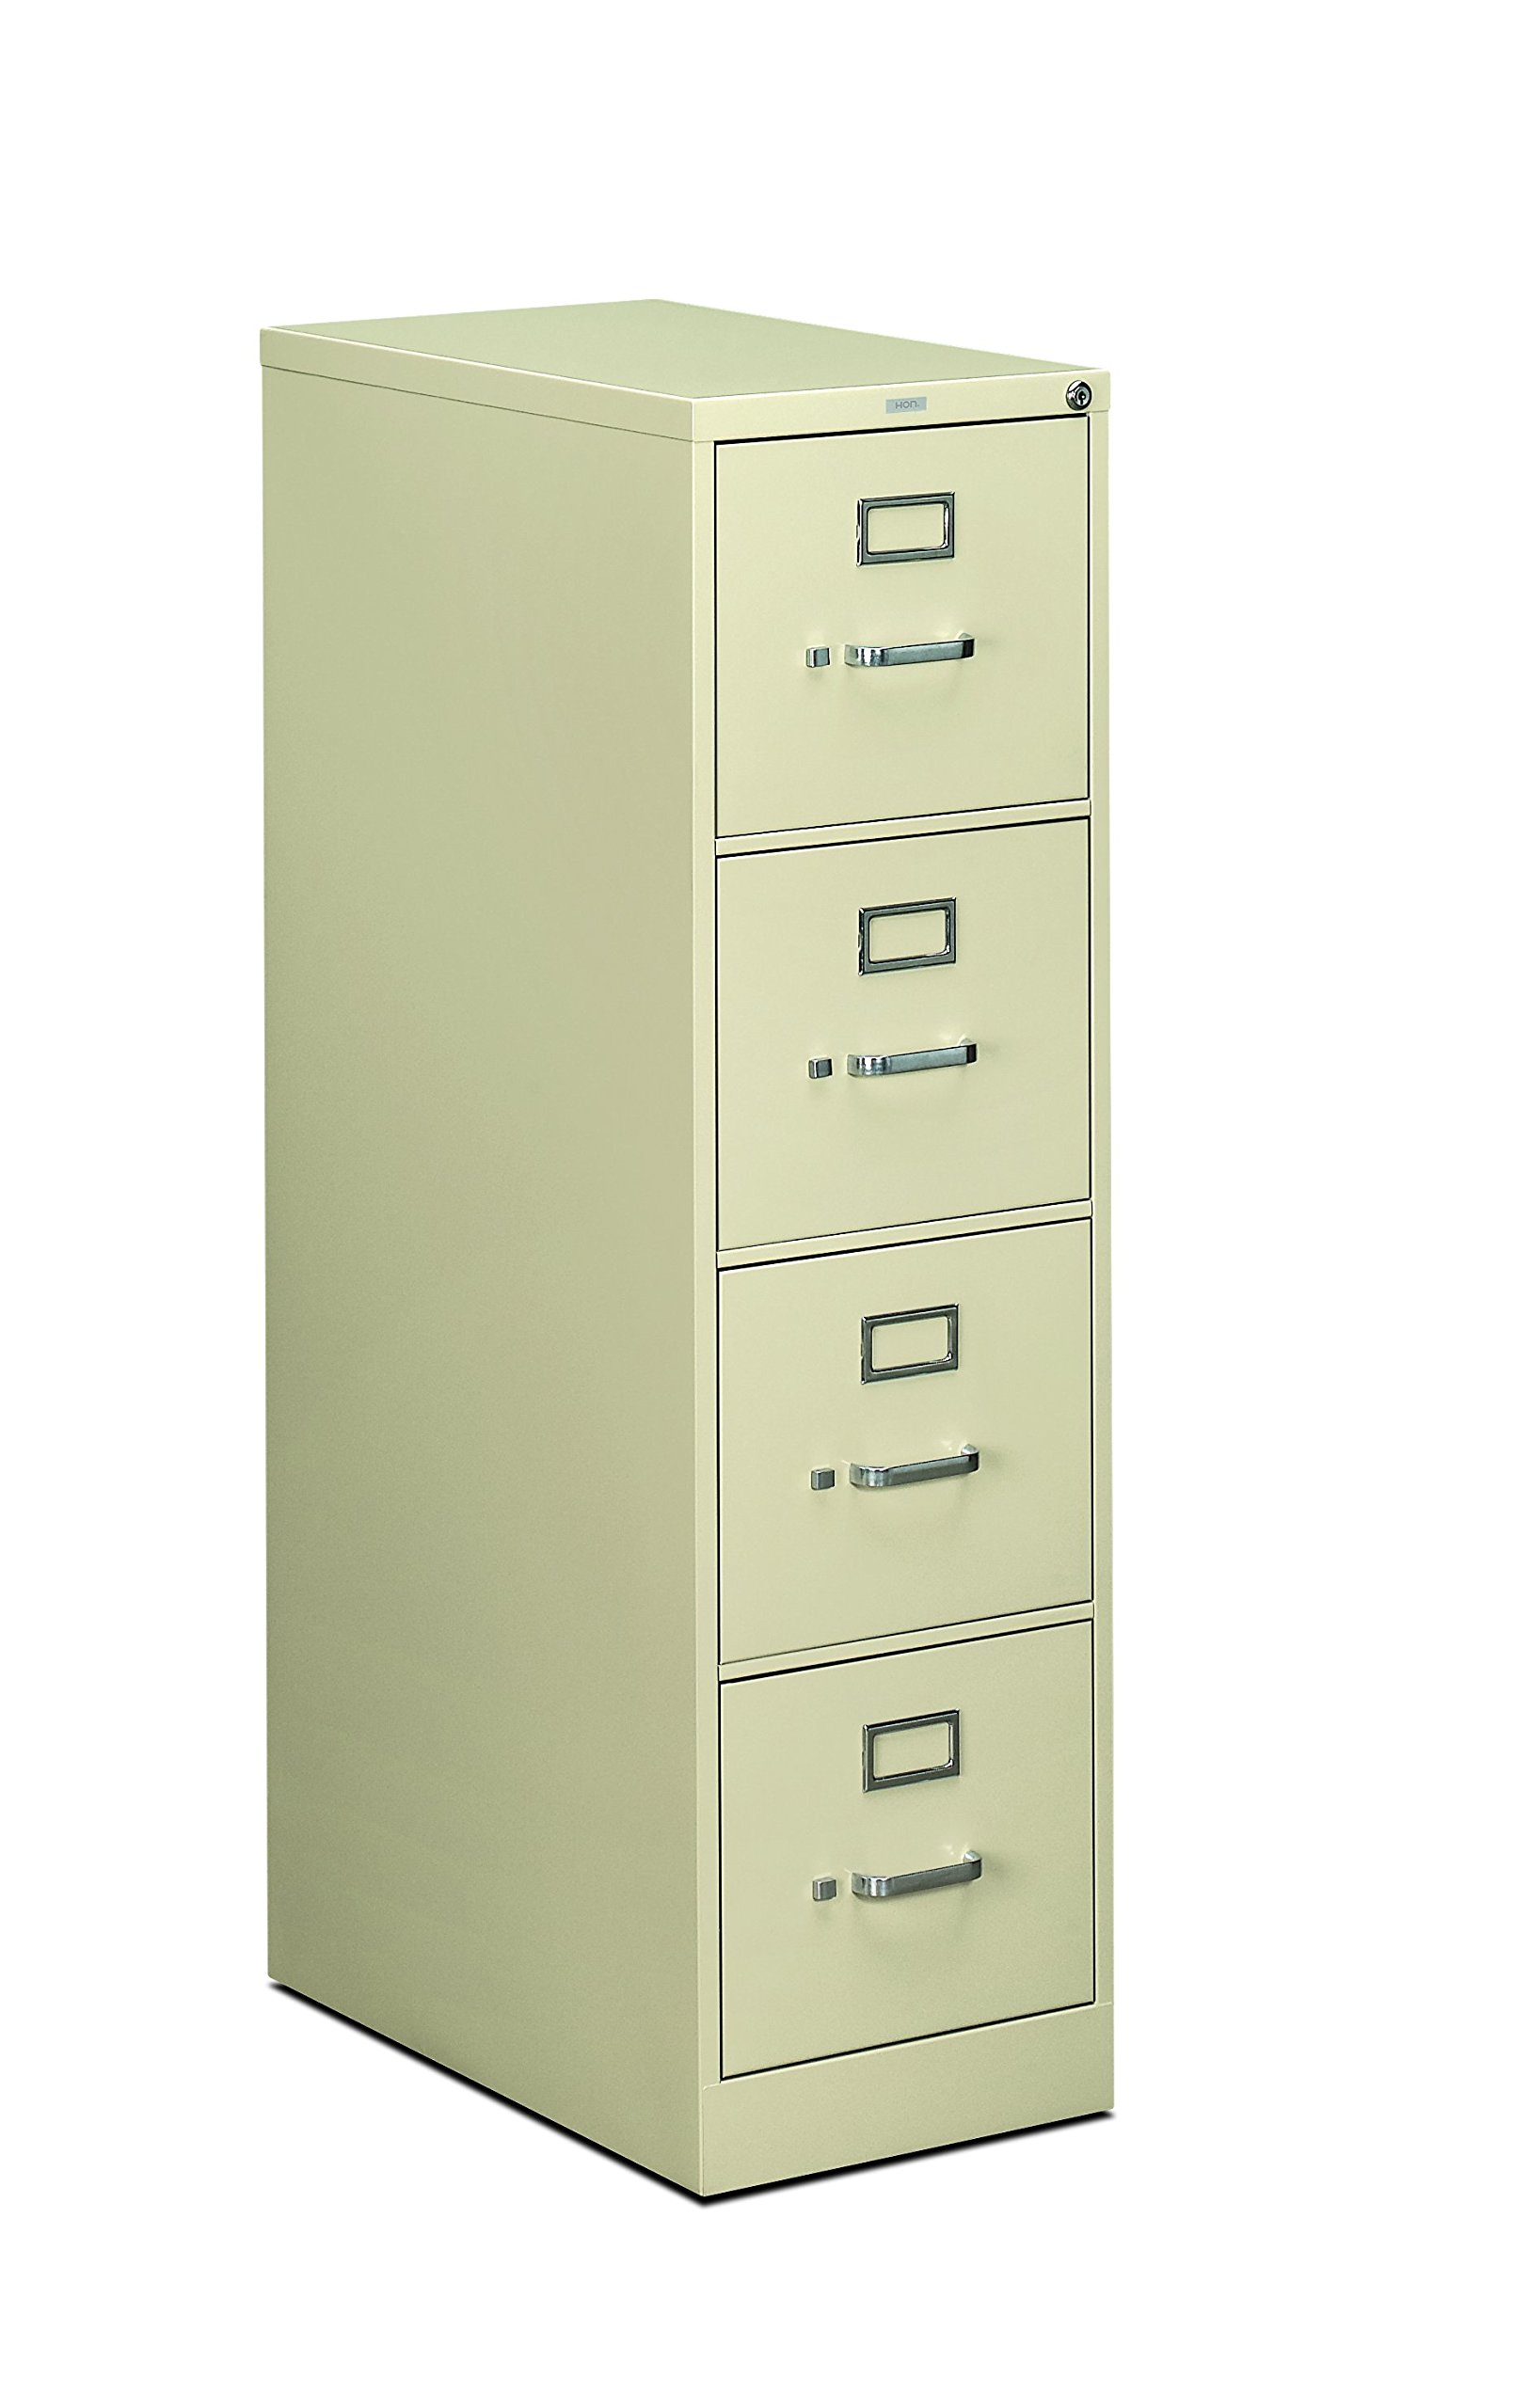 HON 4-Drawer Filing Cabinet - 510 Series Full-Suspension Letter File Cabinet, 52 by 25-Inch, Putty (H514) by HON